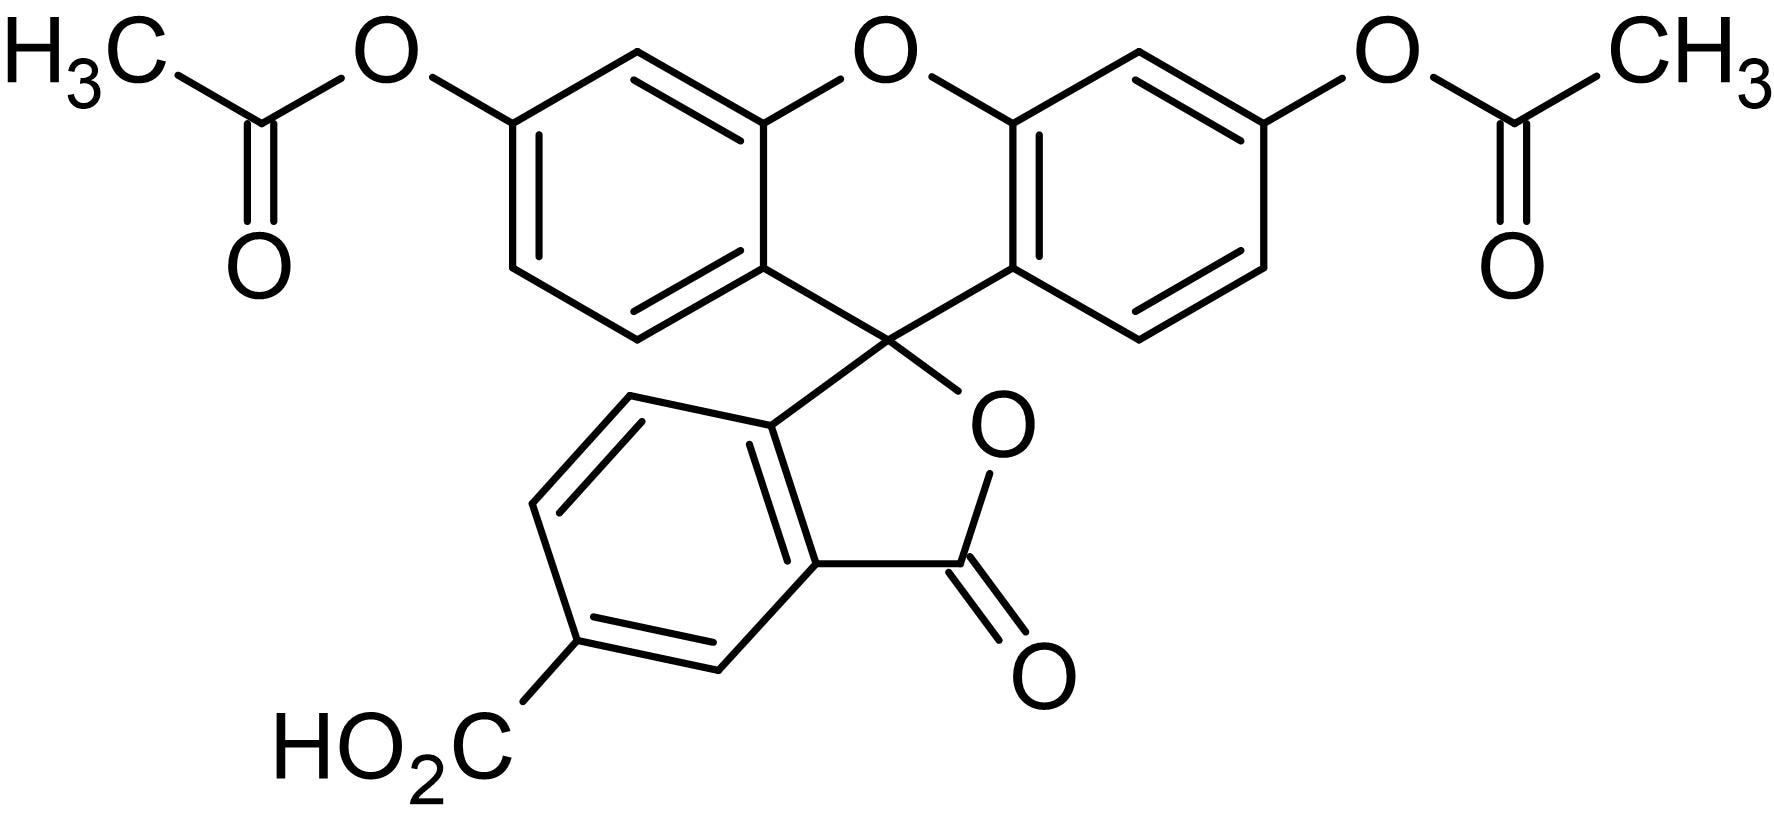 Chemical Structure - 5-CFDA (5-Carboxyfluorescein Diacetate), Fluorogenic non-selective esterase substrate (ab145256)